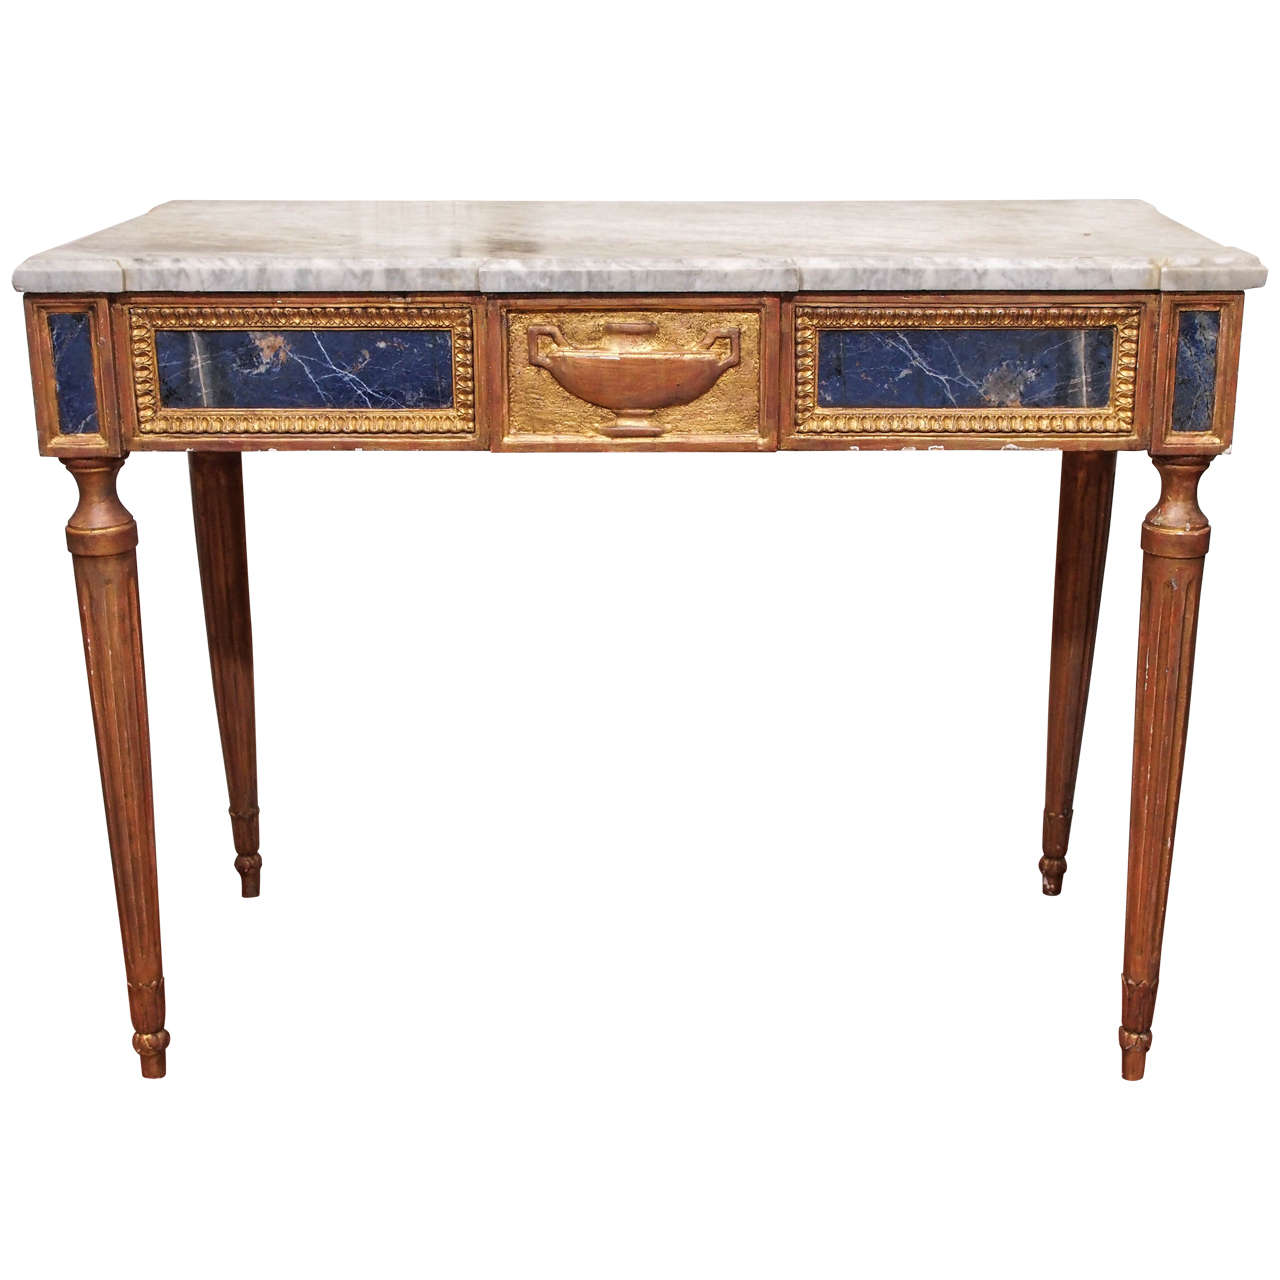 Italian louis xvi console table with lapis lazuli panels for sale italian louis xvi console table with lapis lazuli panels 1 geotapseo Choice Image